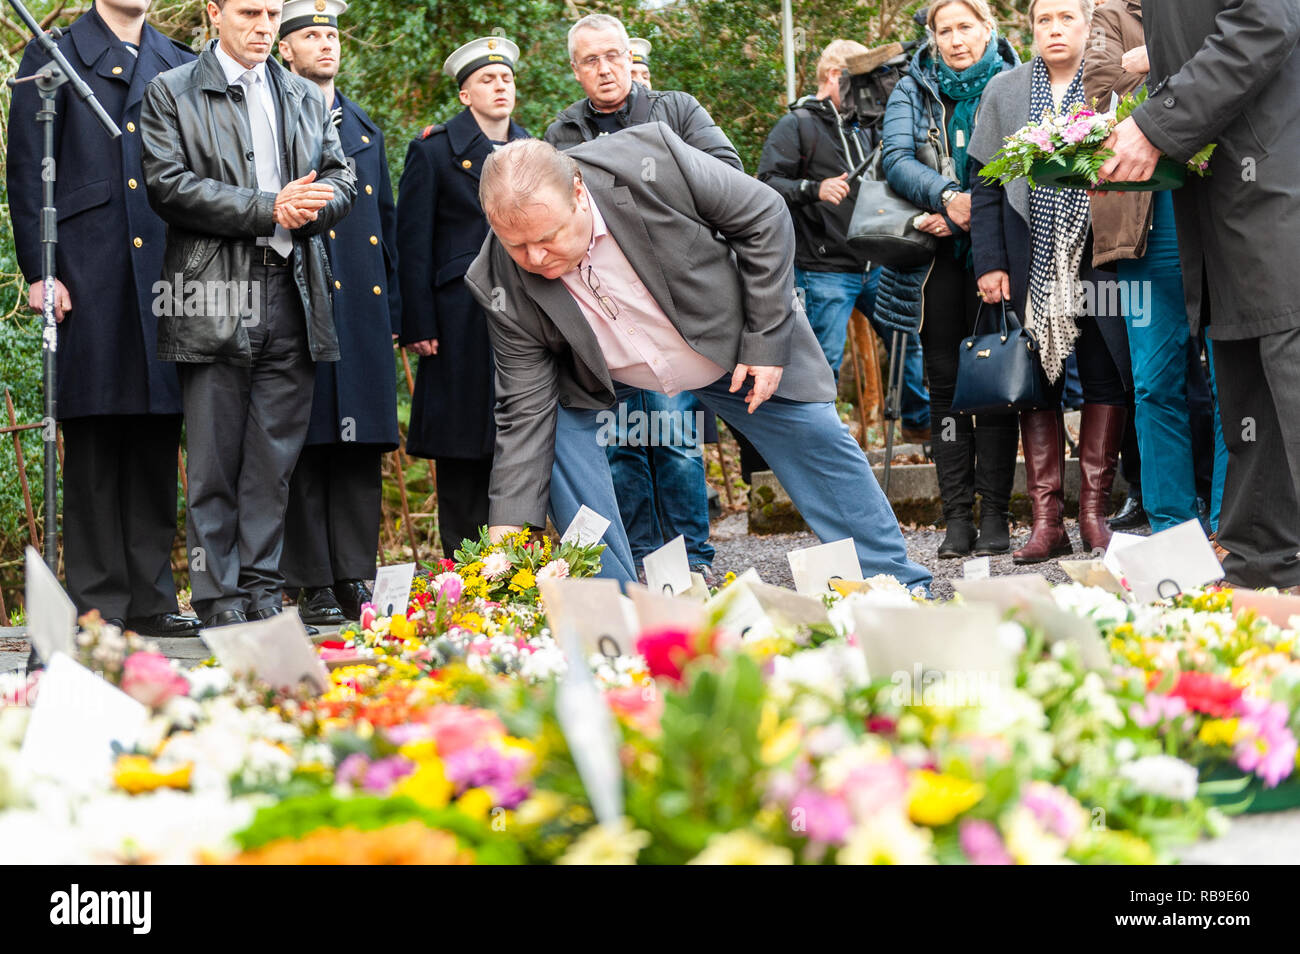 Bantry, West Cork, Ireland. 8th Jan, 2019. On the 40th Anniversary of the Whiddy Island disaster, in which the French oil tanker Betelgeuse exploded killing 50, a huge crowd attended the formalities in Abbey Graveyard, Bantry. Cllr. Danny Collins lays a wreath at the memorial.  Credit: Andy Gibson/Alamy Live News. - Stock Image